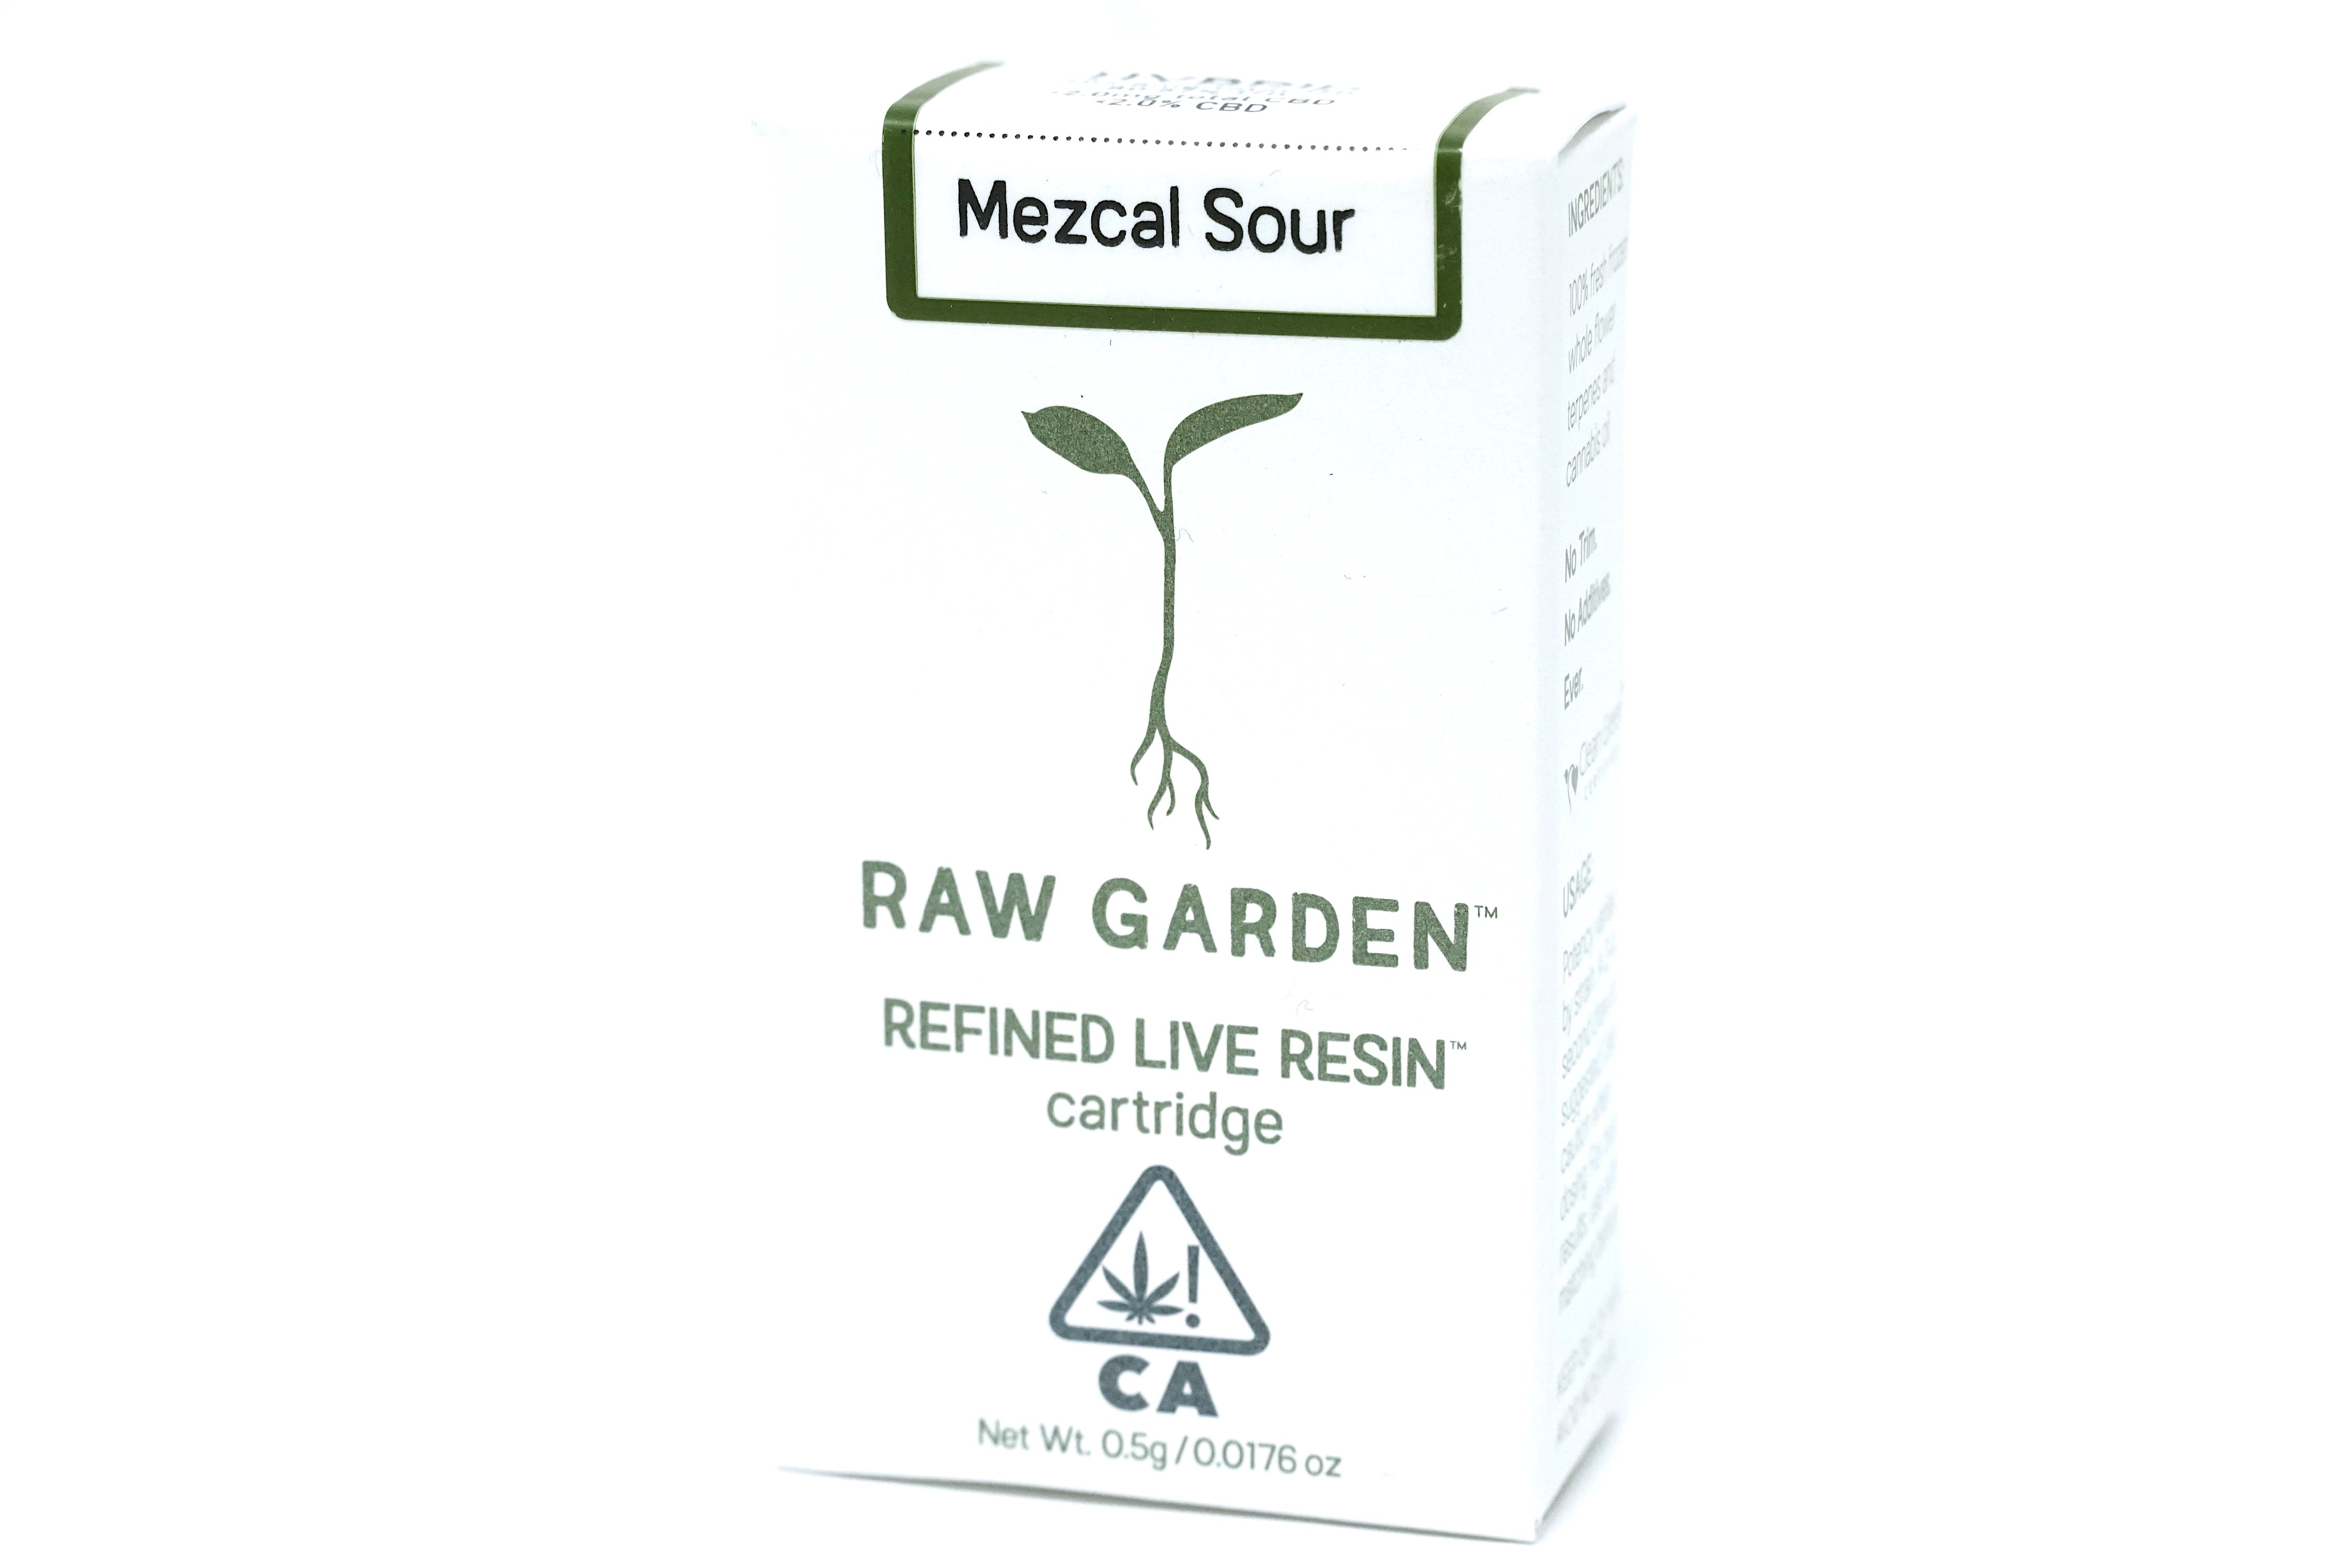 Raw Garden - Mezcal Sour 500mg